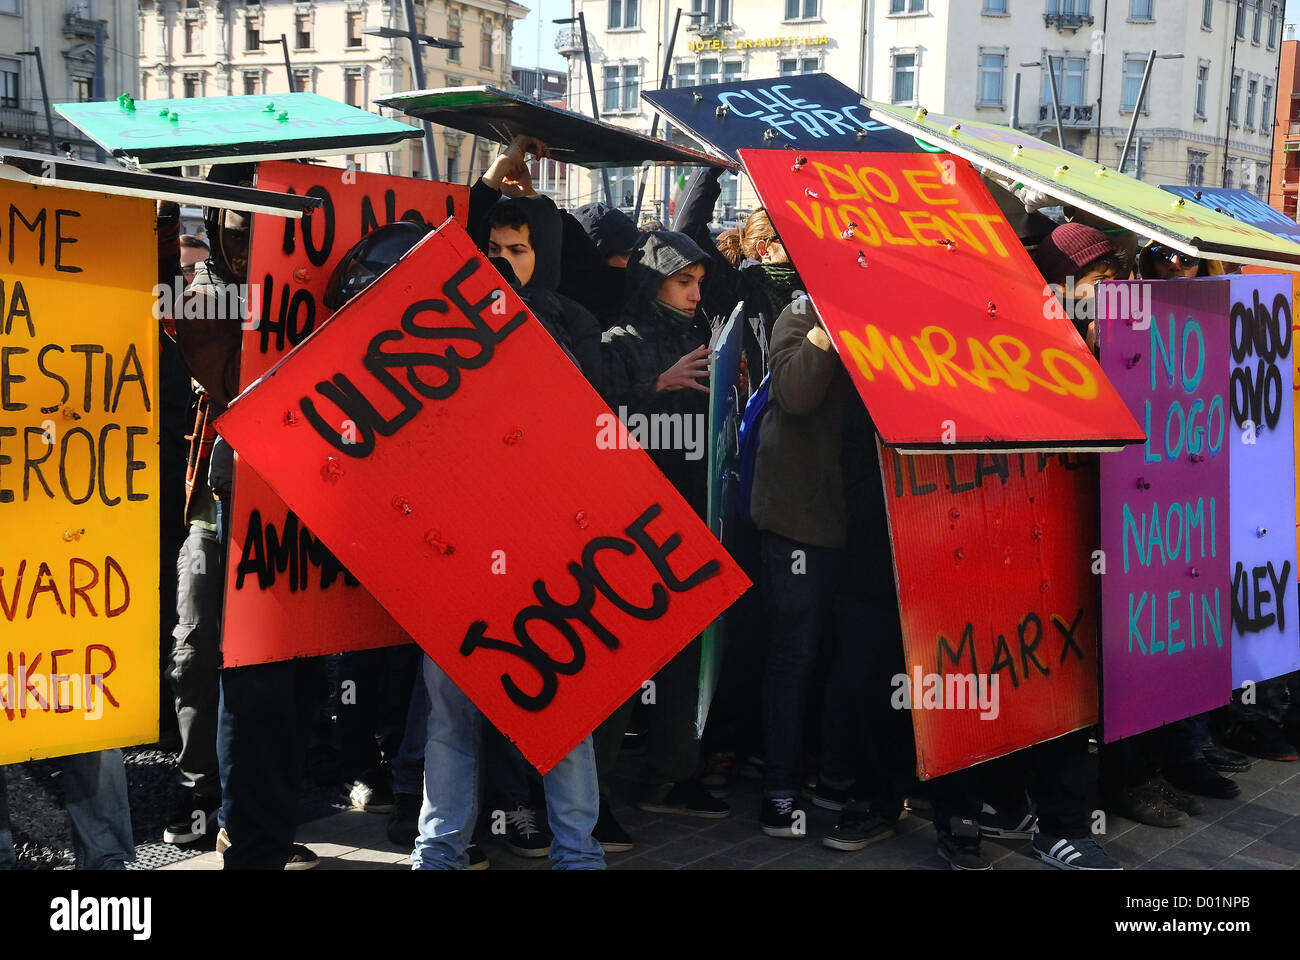 Padua, italy, November 14th 2012 : European general strike. Clashes with policemen. - Stock Image